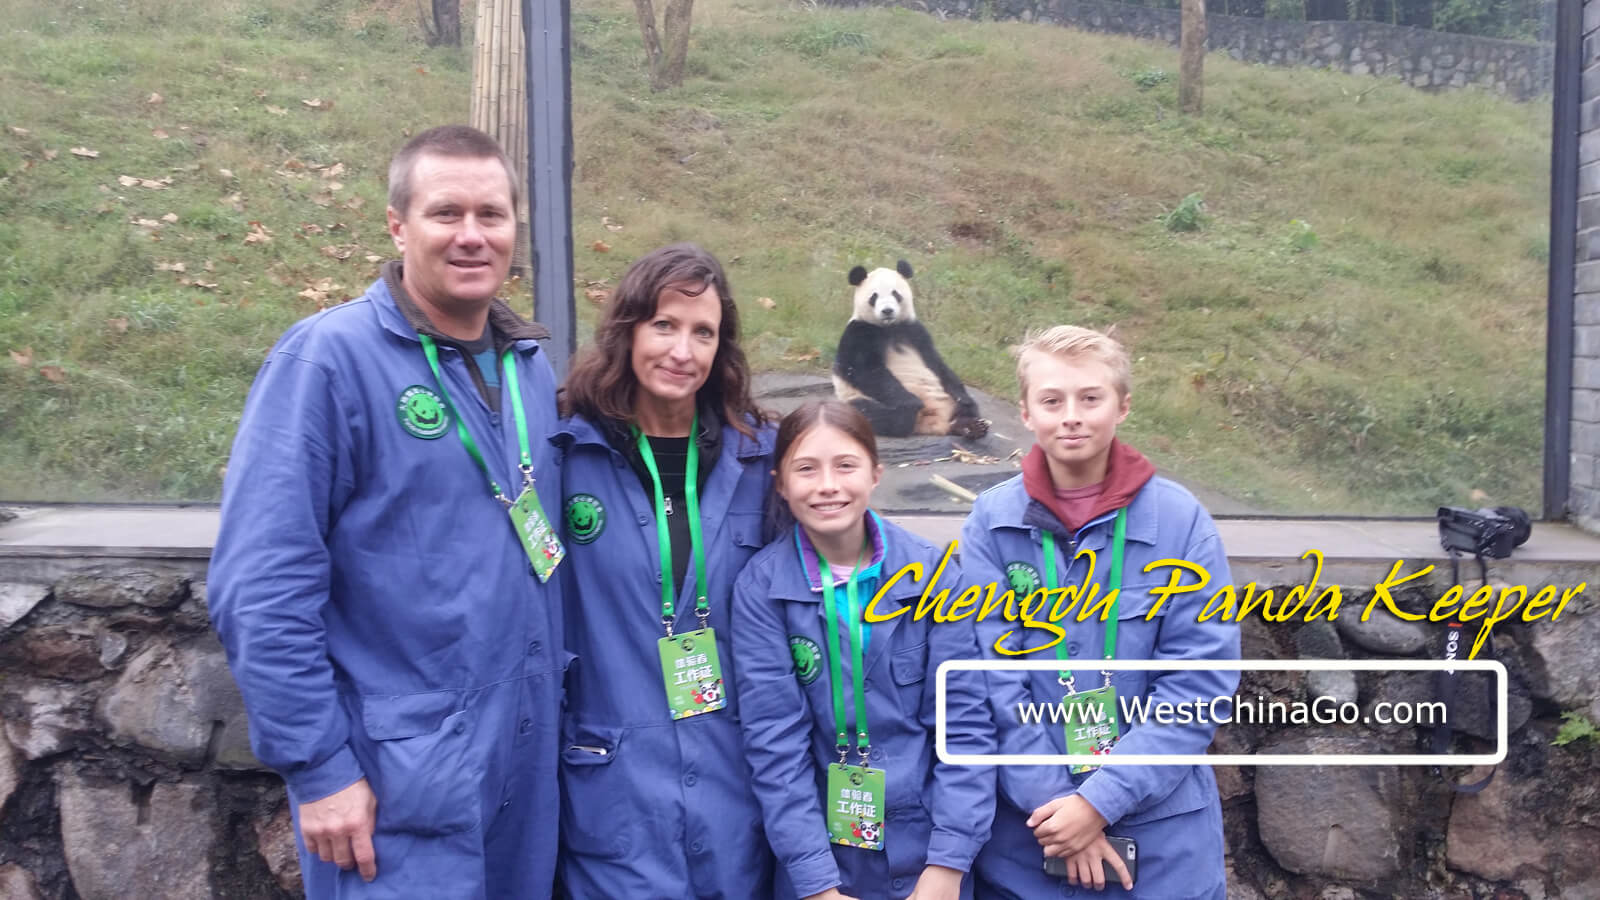 2019 How To Apply China Chengdu Panda Keeper